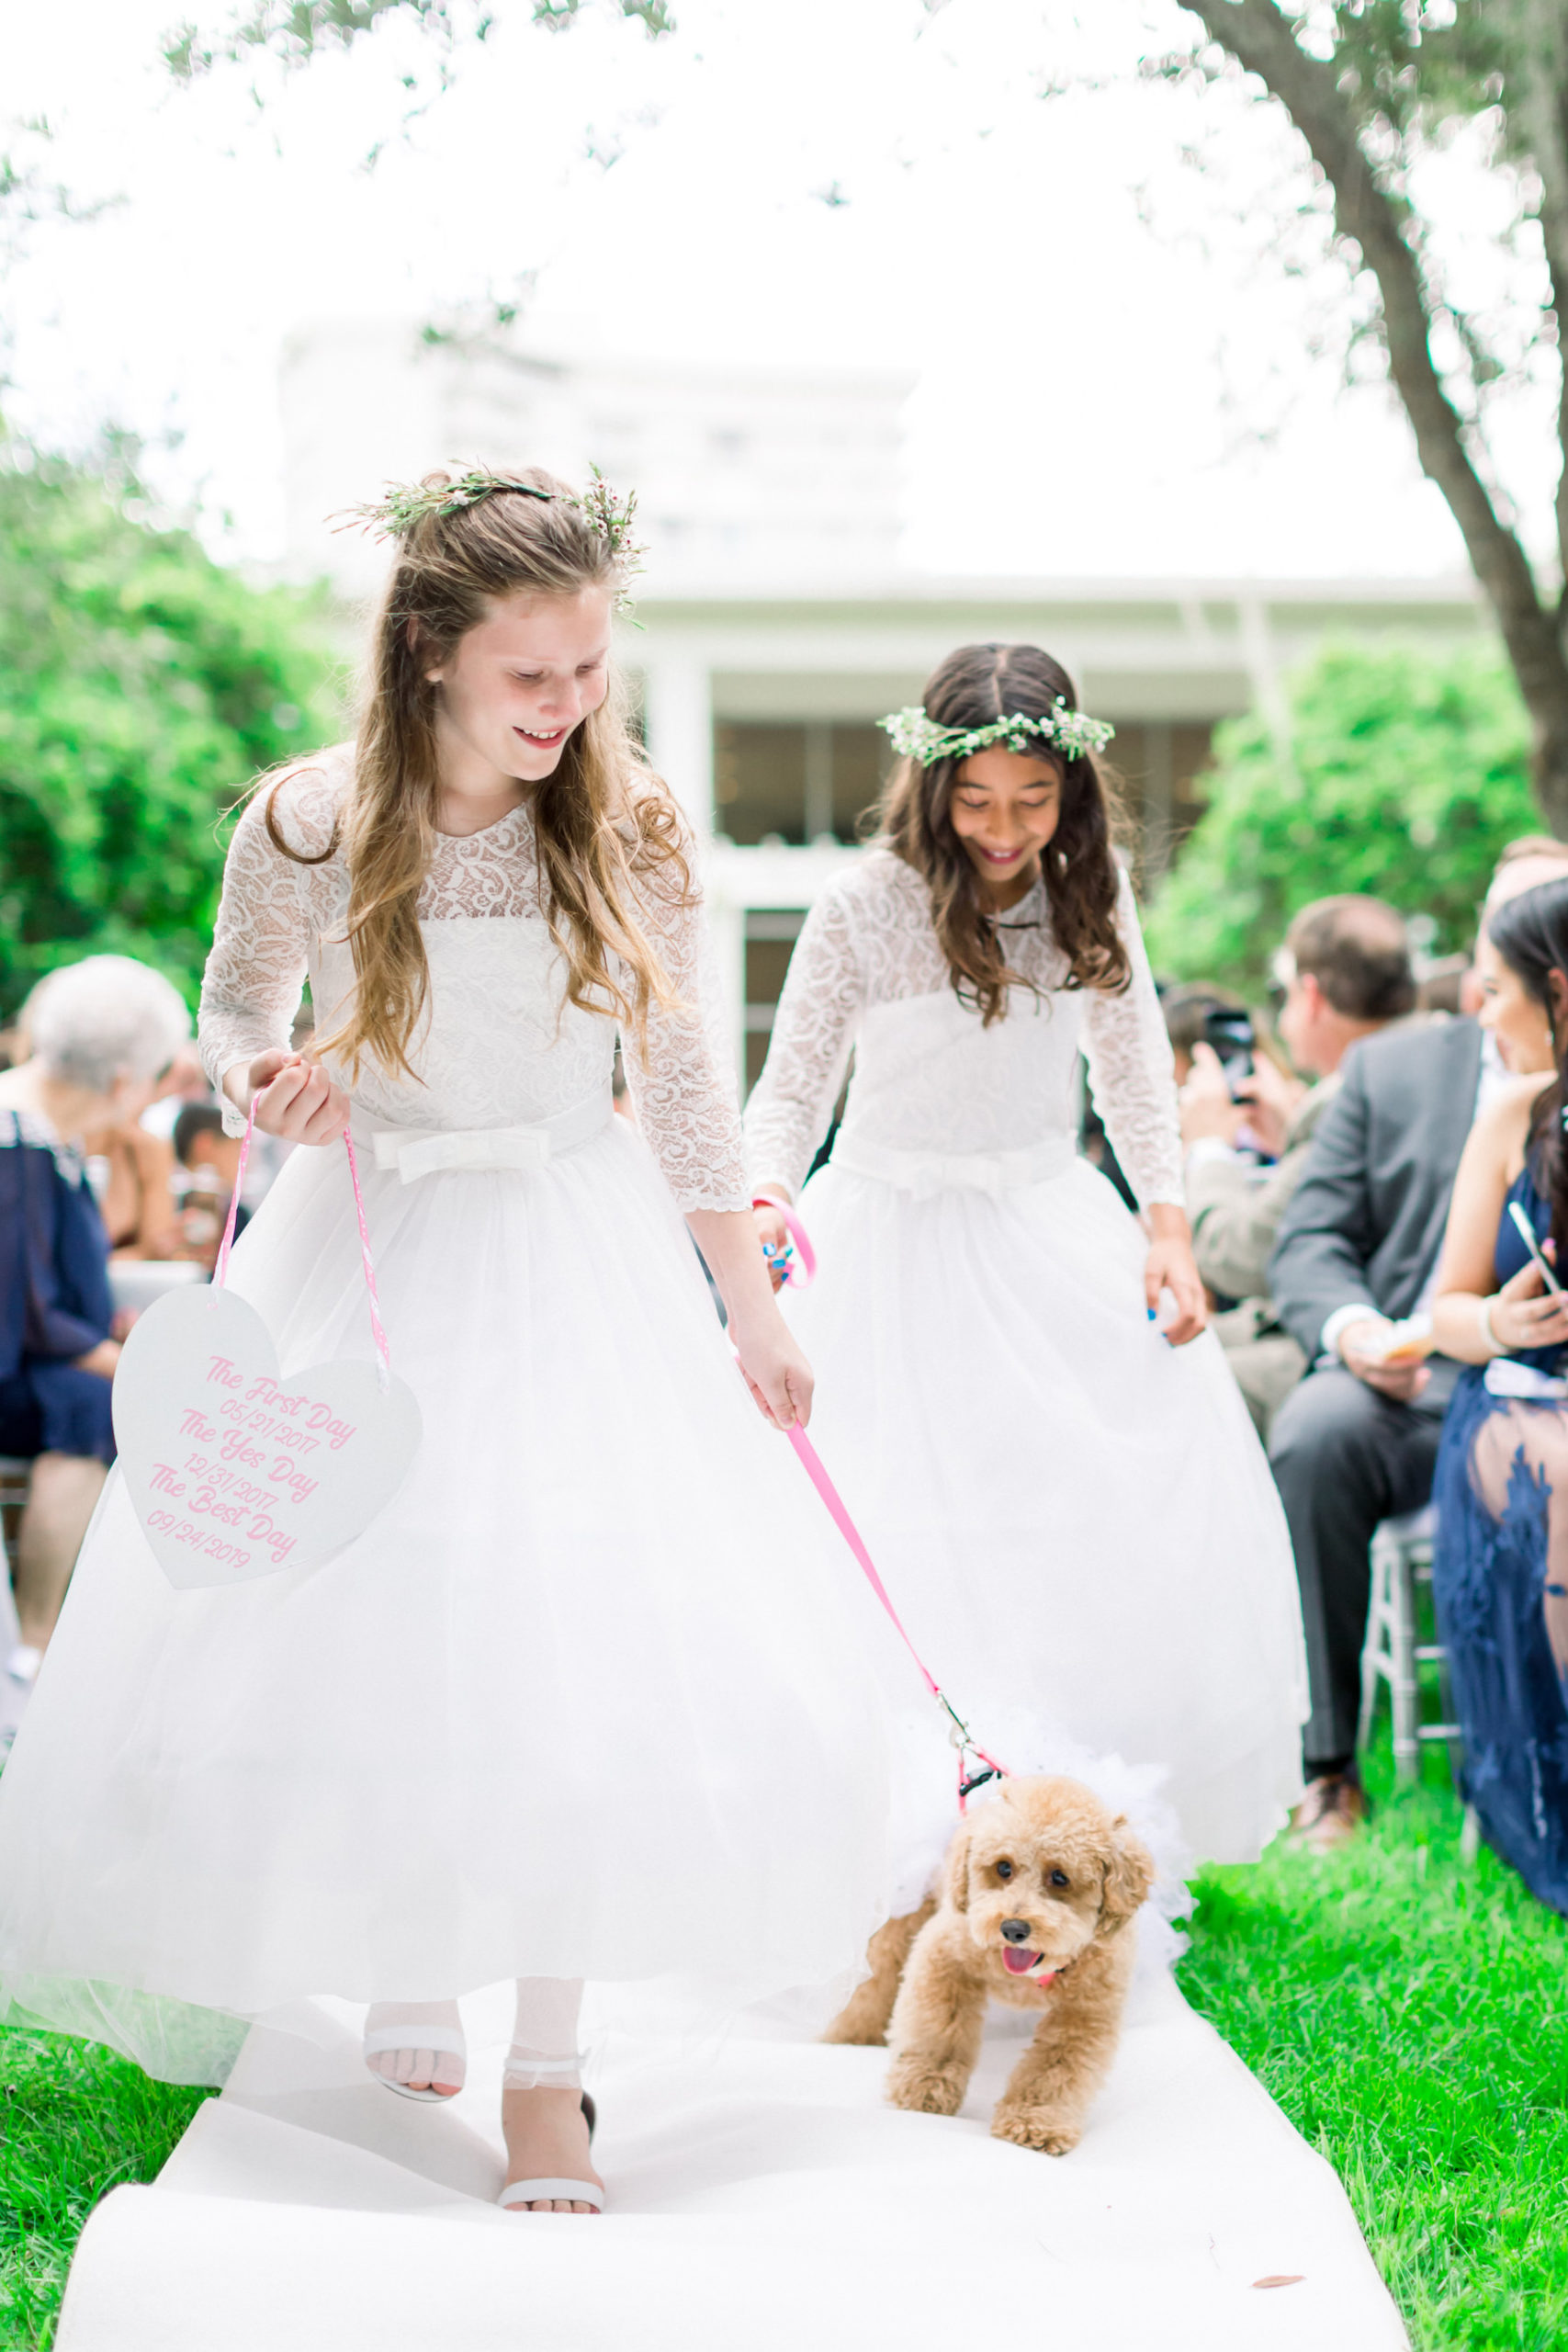 Flower Girls in Matching Lace and Tulle Dresses with Greenery Floral Crowns Walking with Poodle Dog | Wedding Venue Tampa Garden Club | Wedding Photographer Shauna and Jordon Photography | Pet Planner FairyTail Pet Care